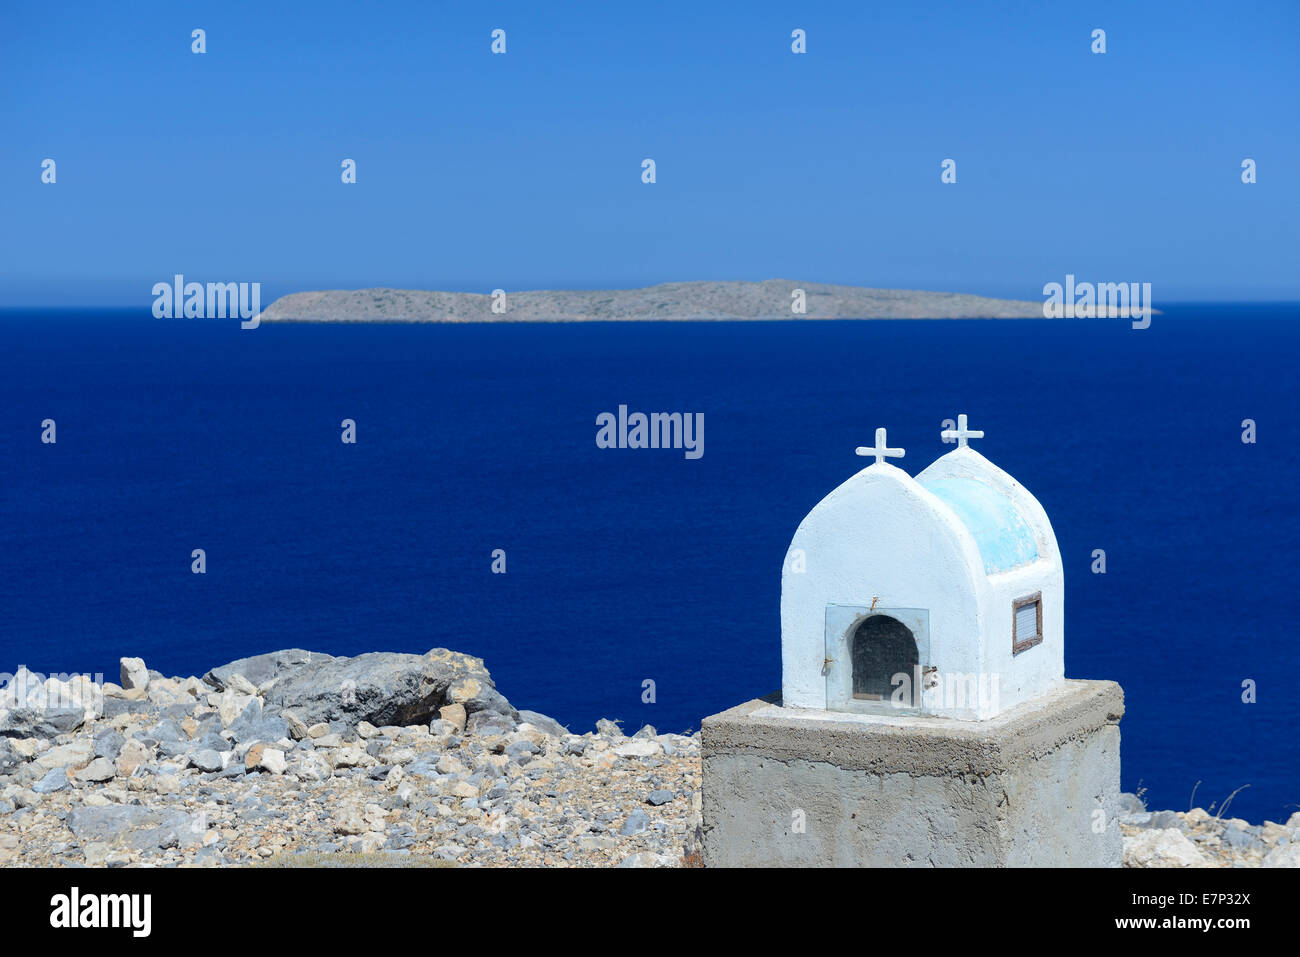 Europe, Greece, Greek, Crete, Mediterranean, island, Itanos, Beach, church, religion, sea, white, - Stock Image